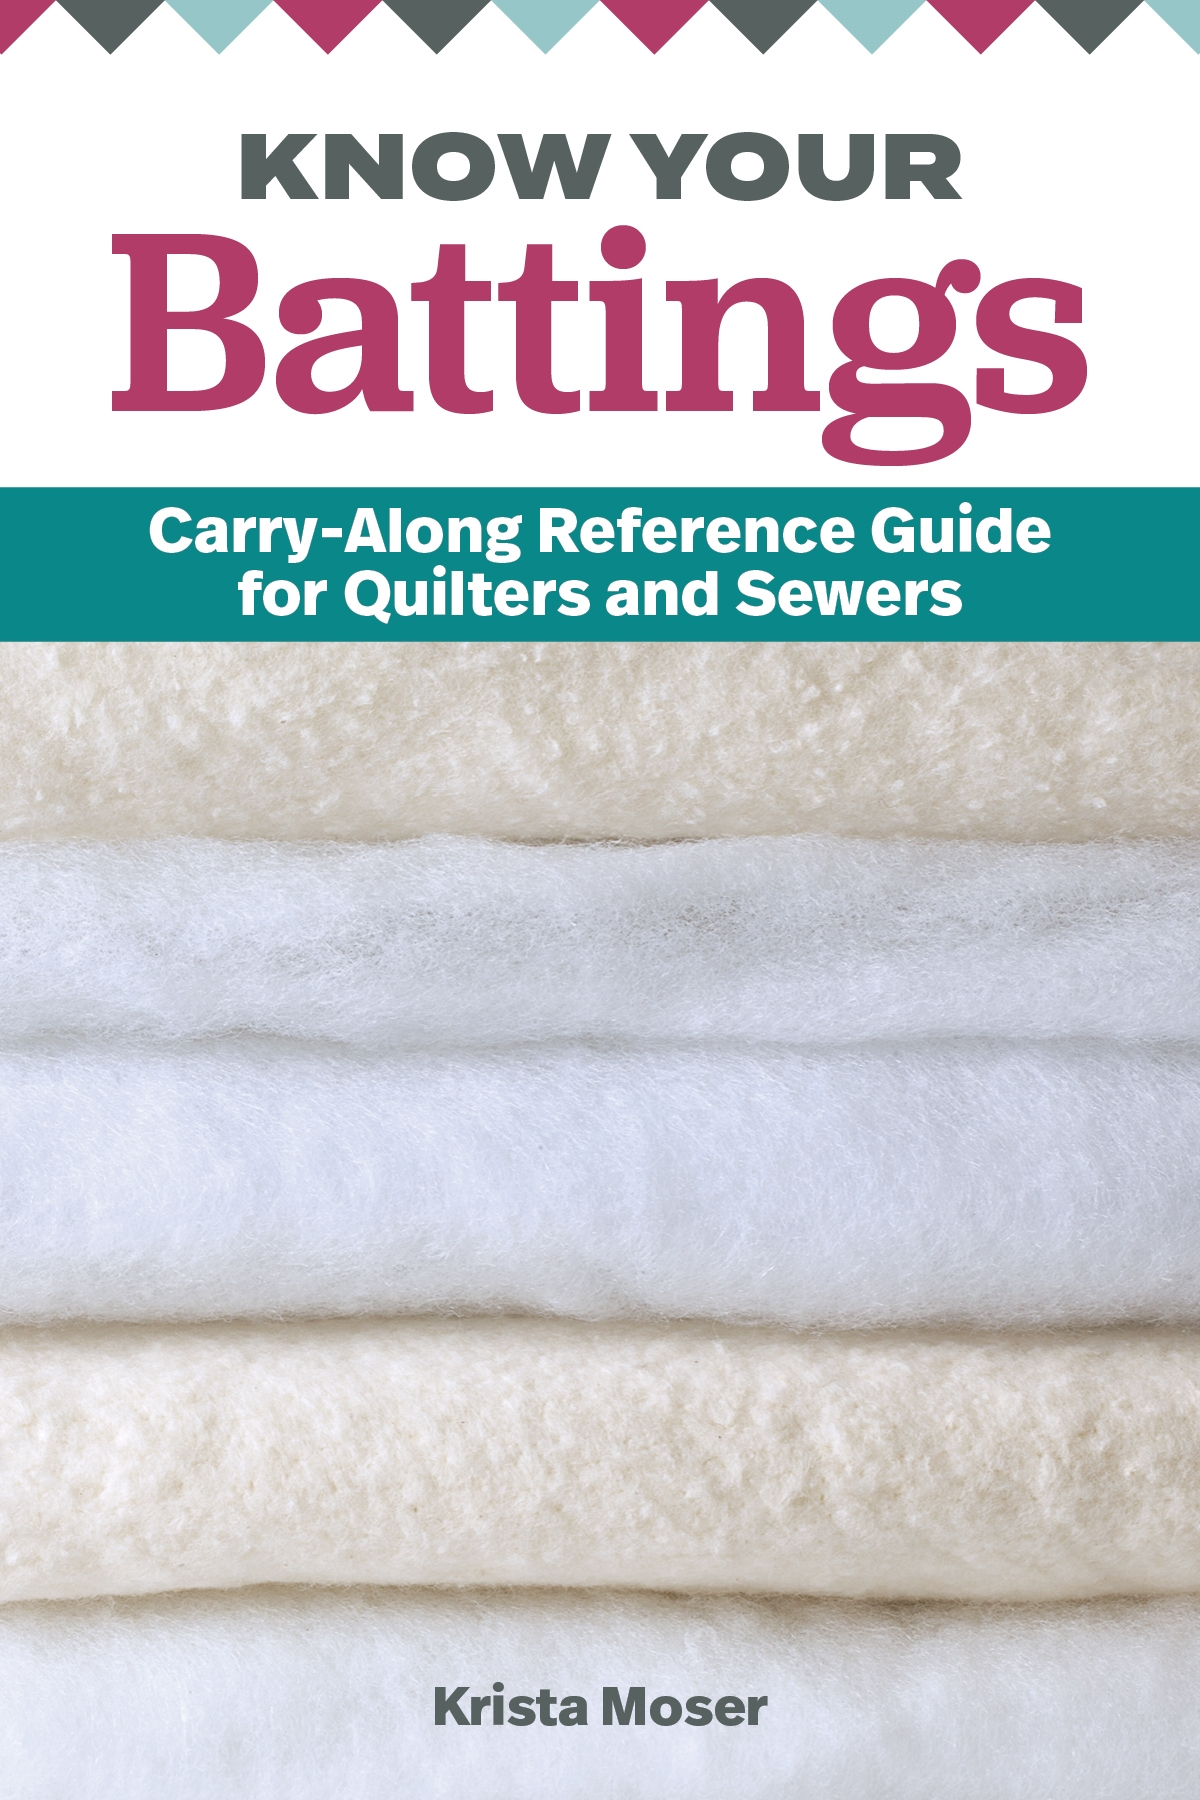 Know Your Battings